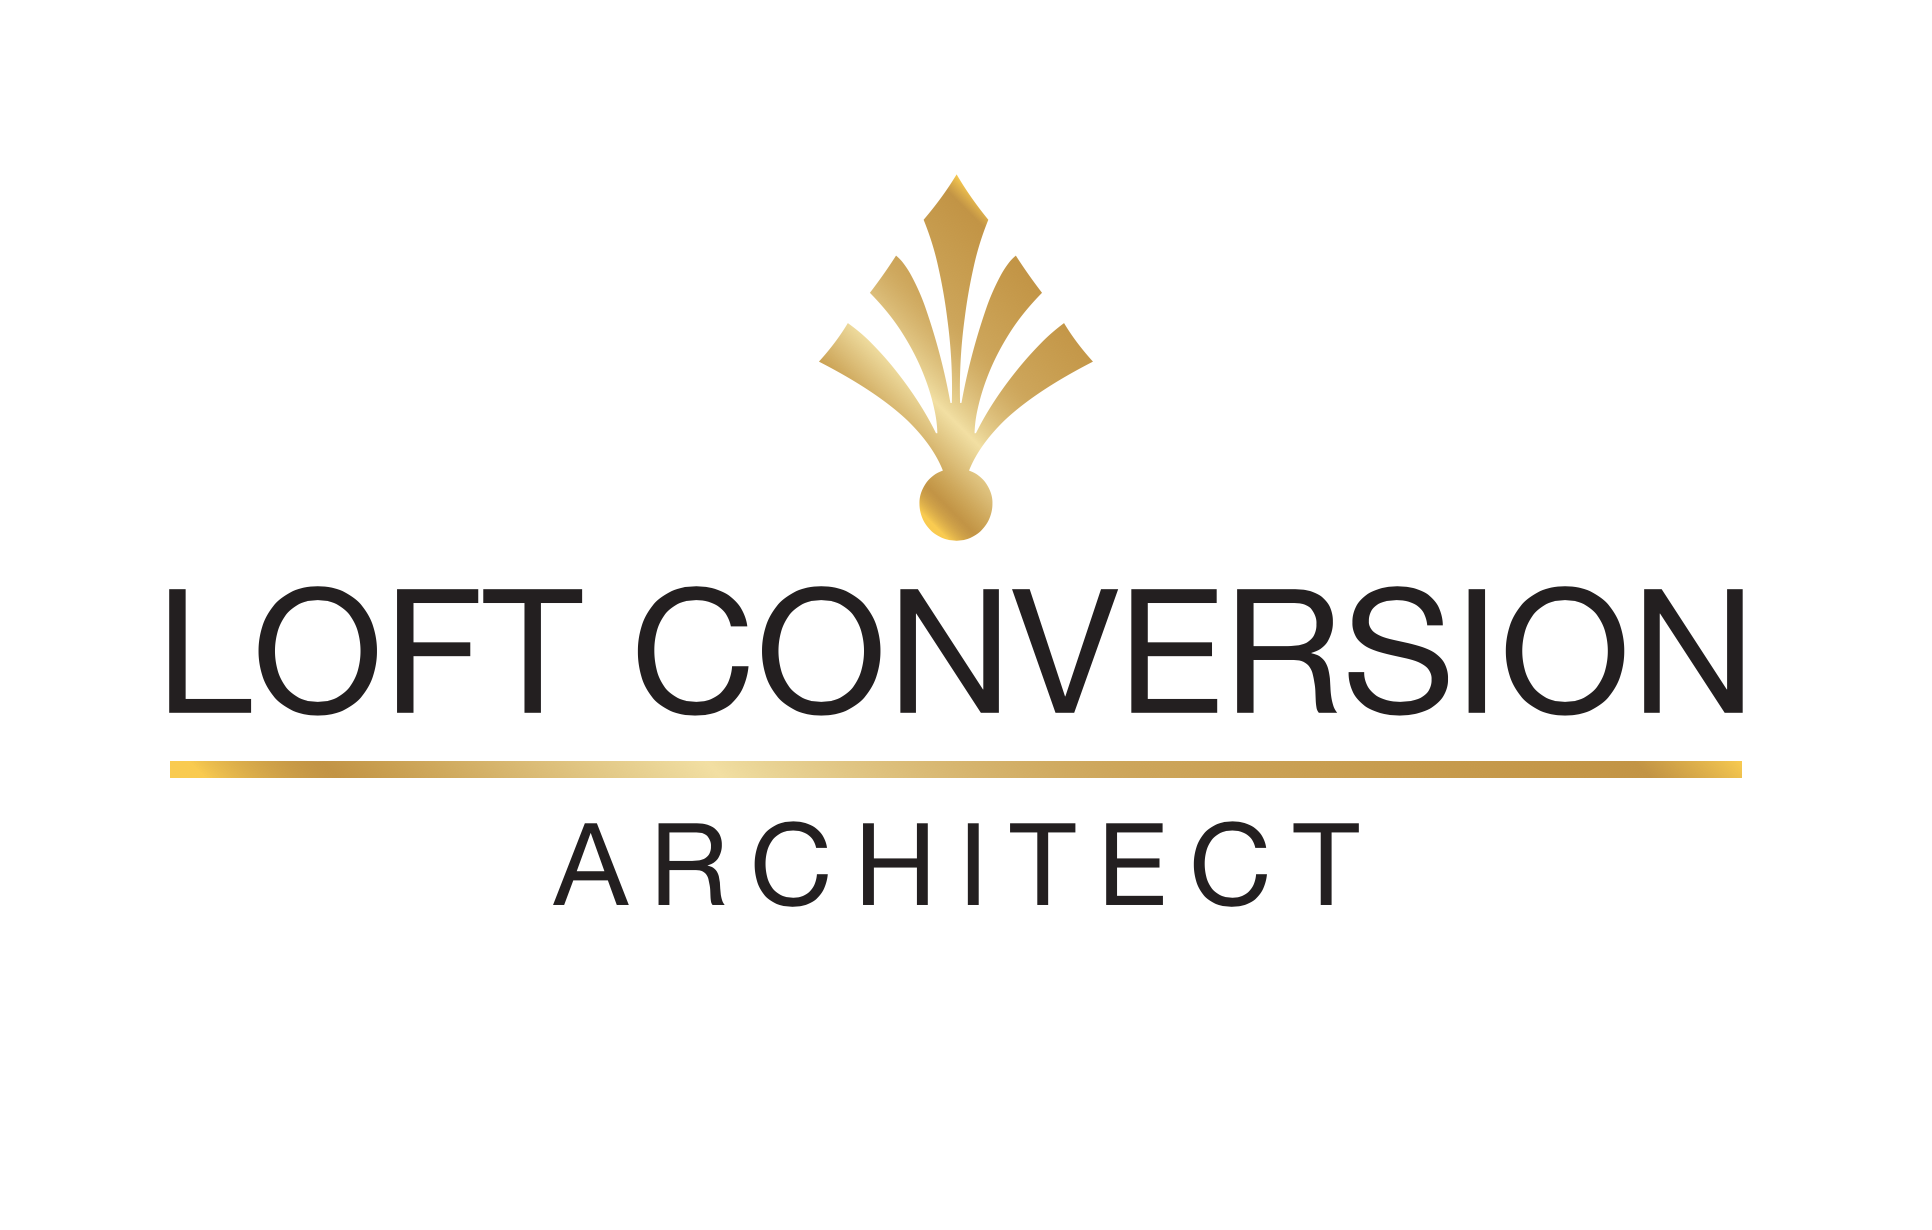 Loft Conversion Architect